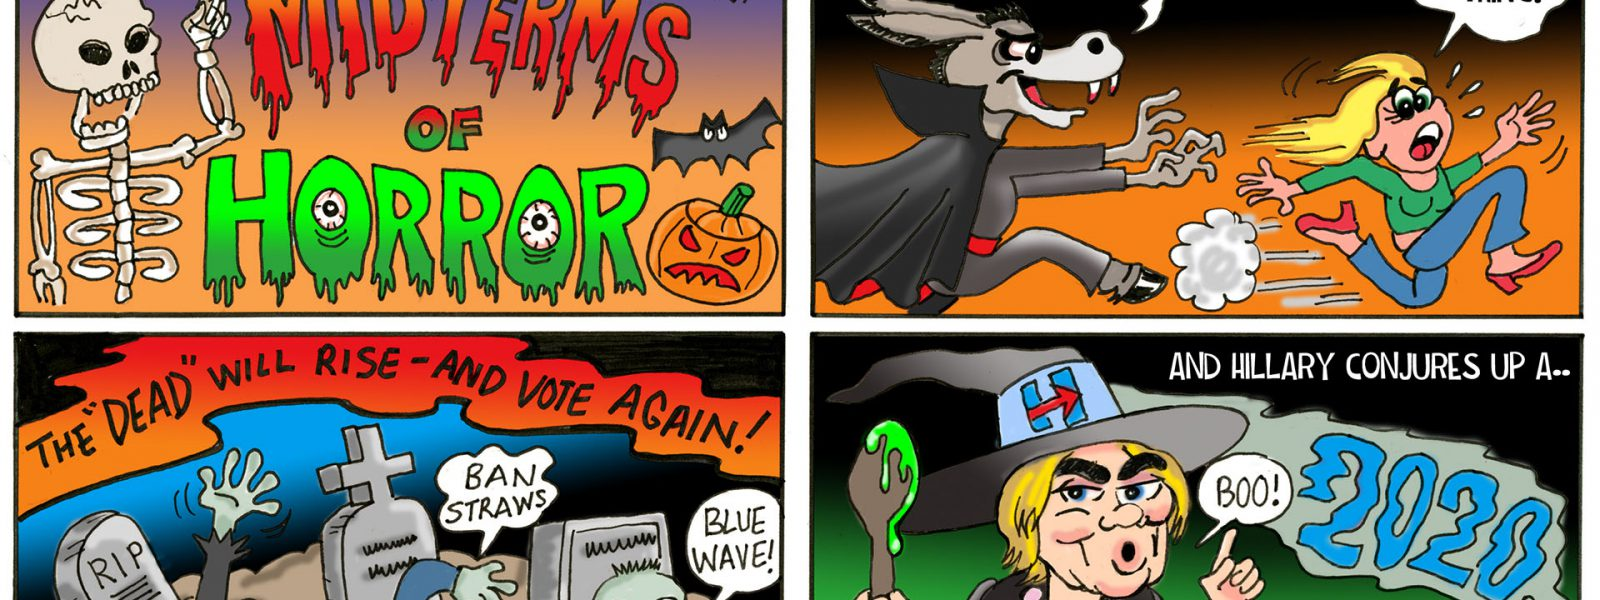 The Democrats' Midterms of Horror Tina Toon